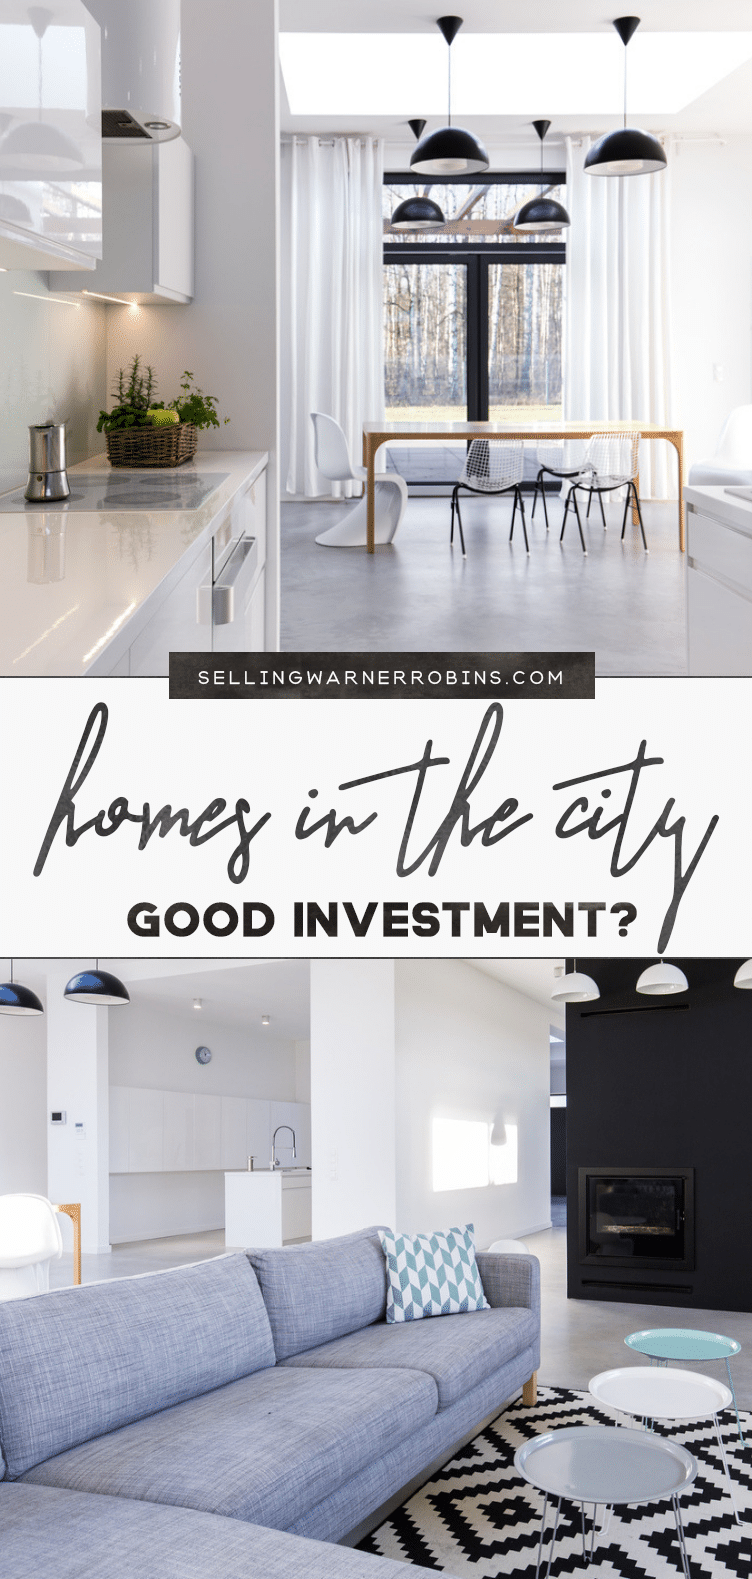 Are City Homes a Good Investment